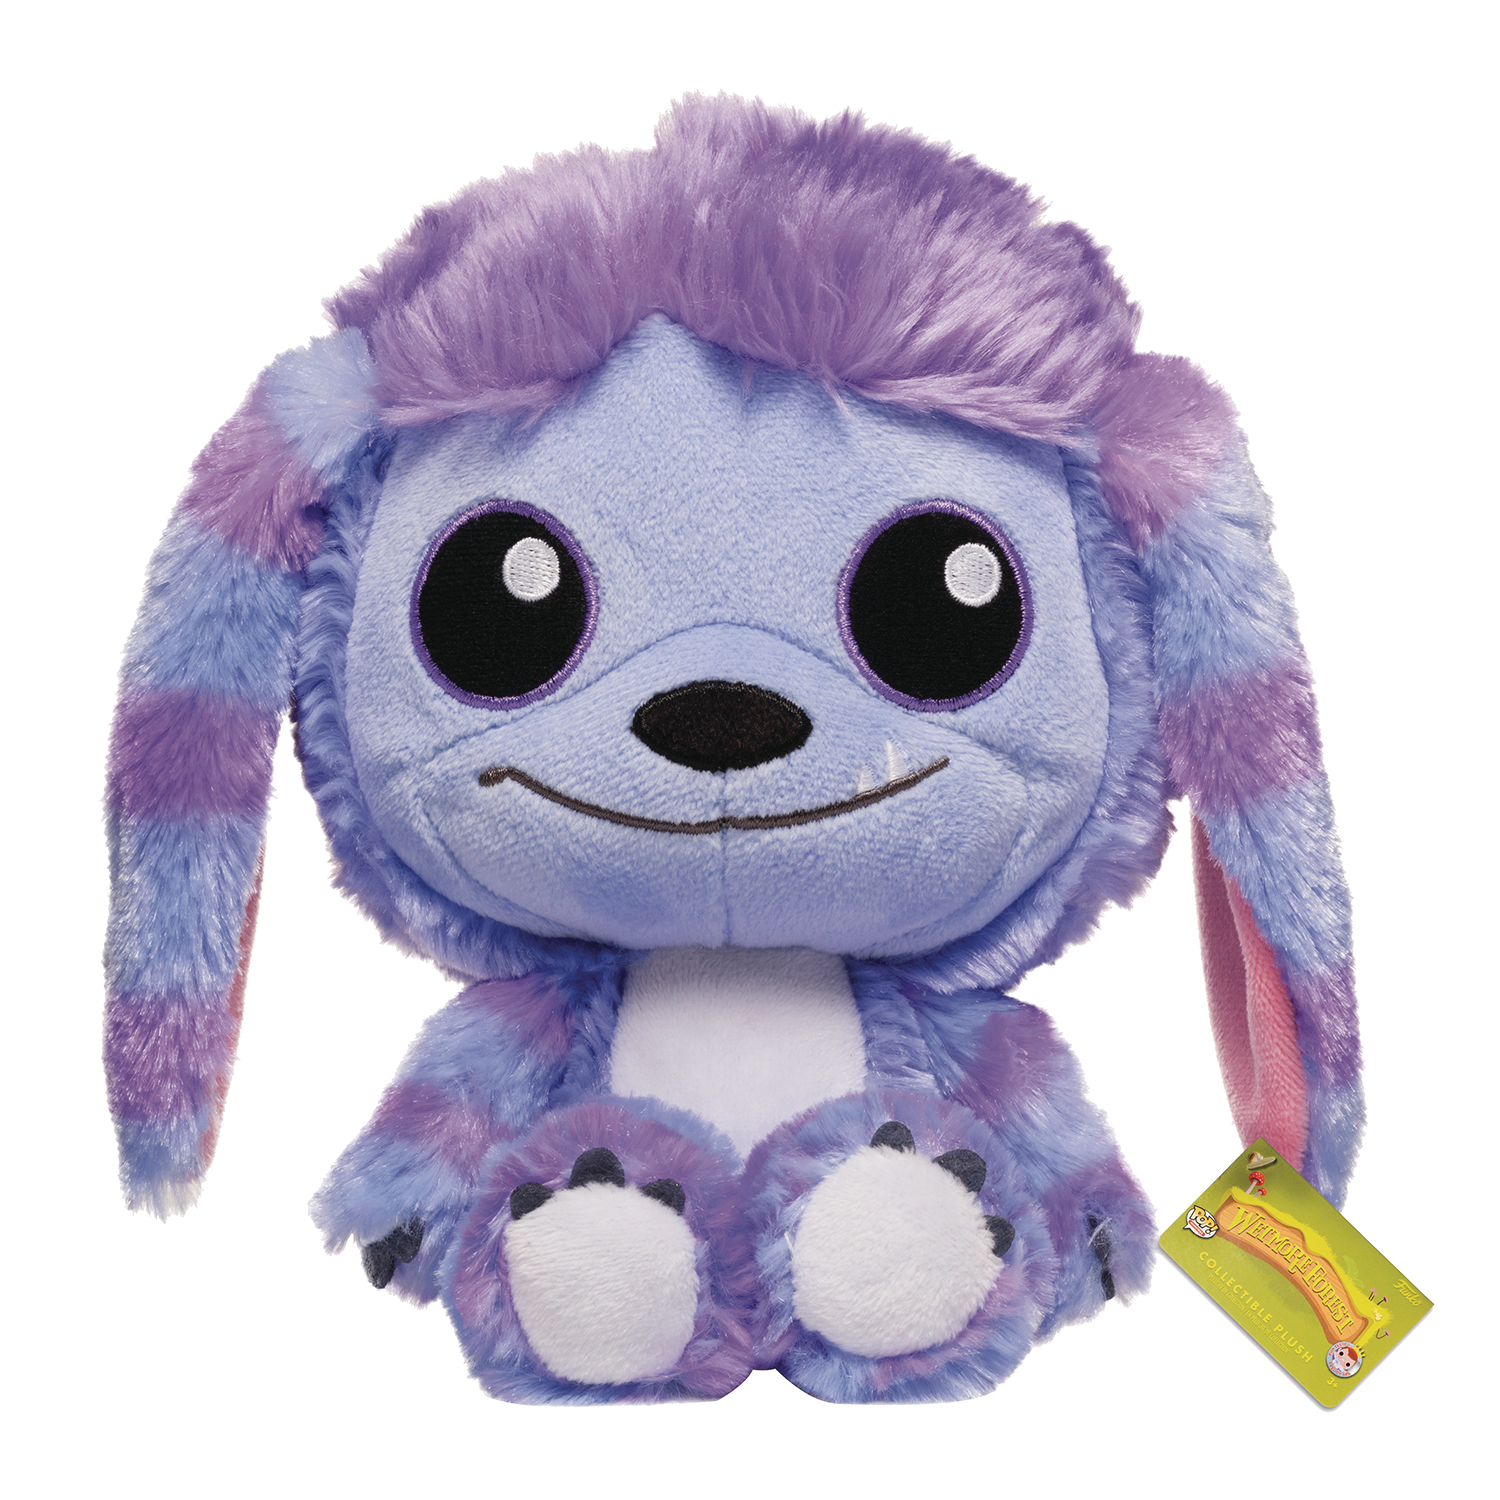 POP FUNKO MONSTERS SNUGGLE-TOOTH REGULAR PLUSH